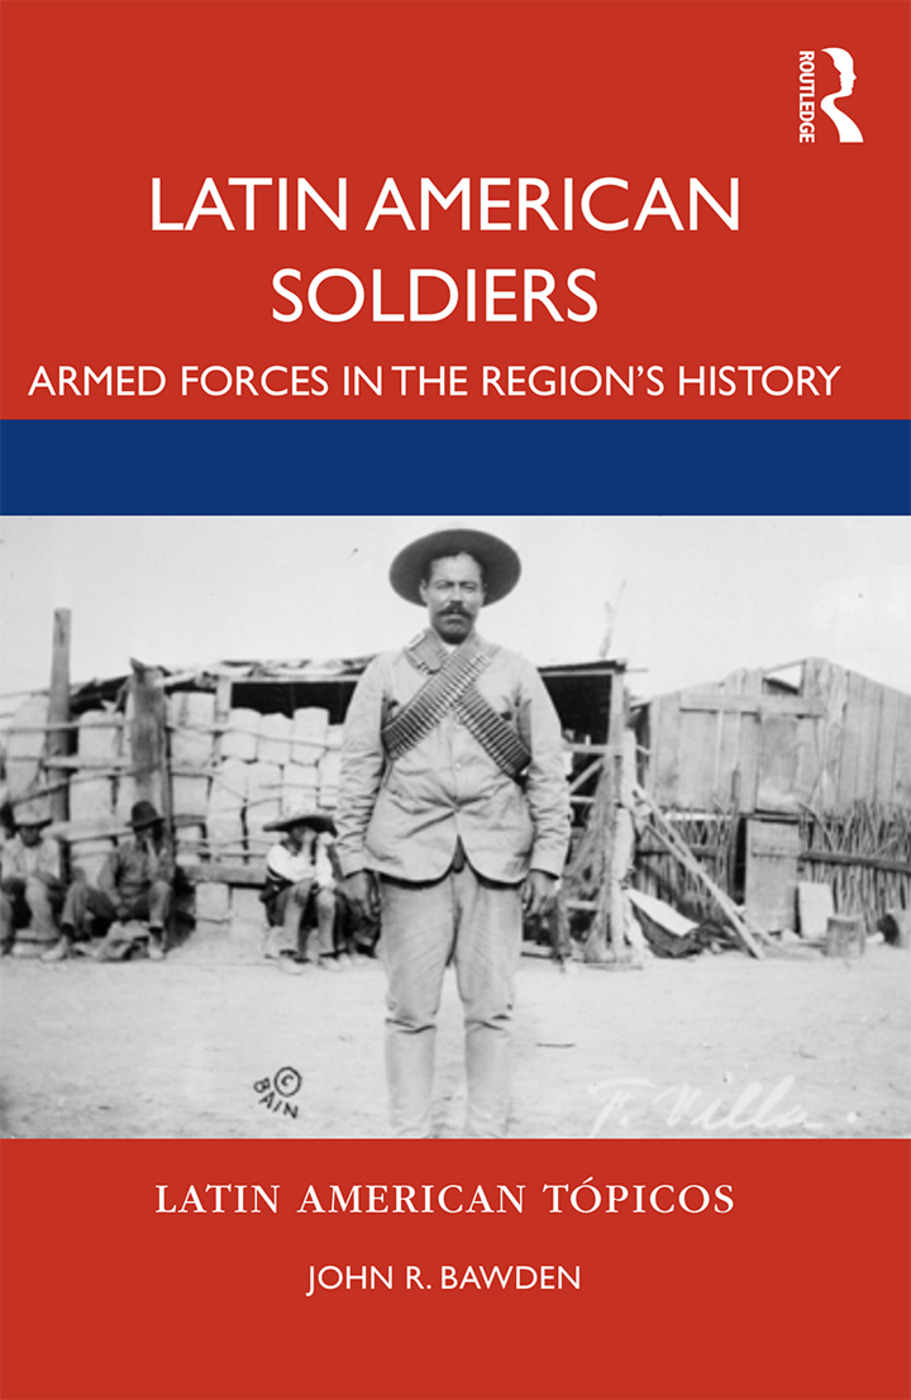 Latin American Soldiers: Armed forces in the region's history book cover